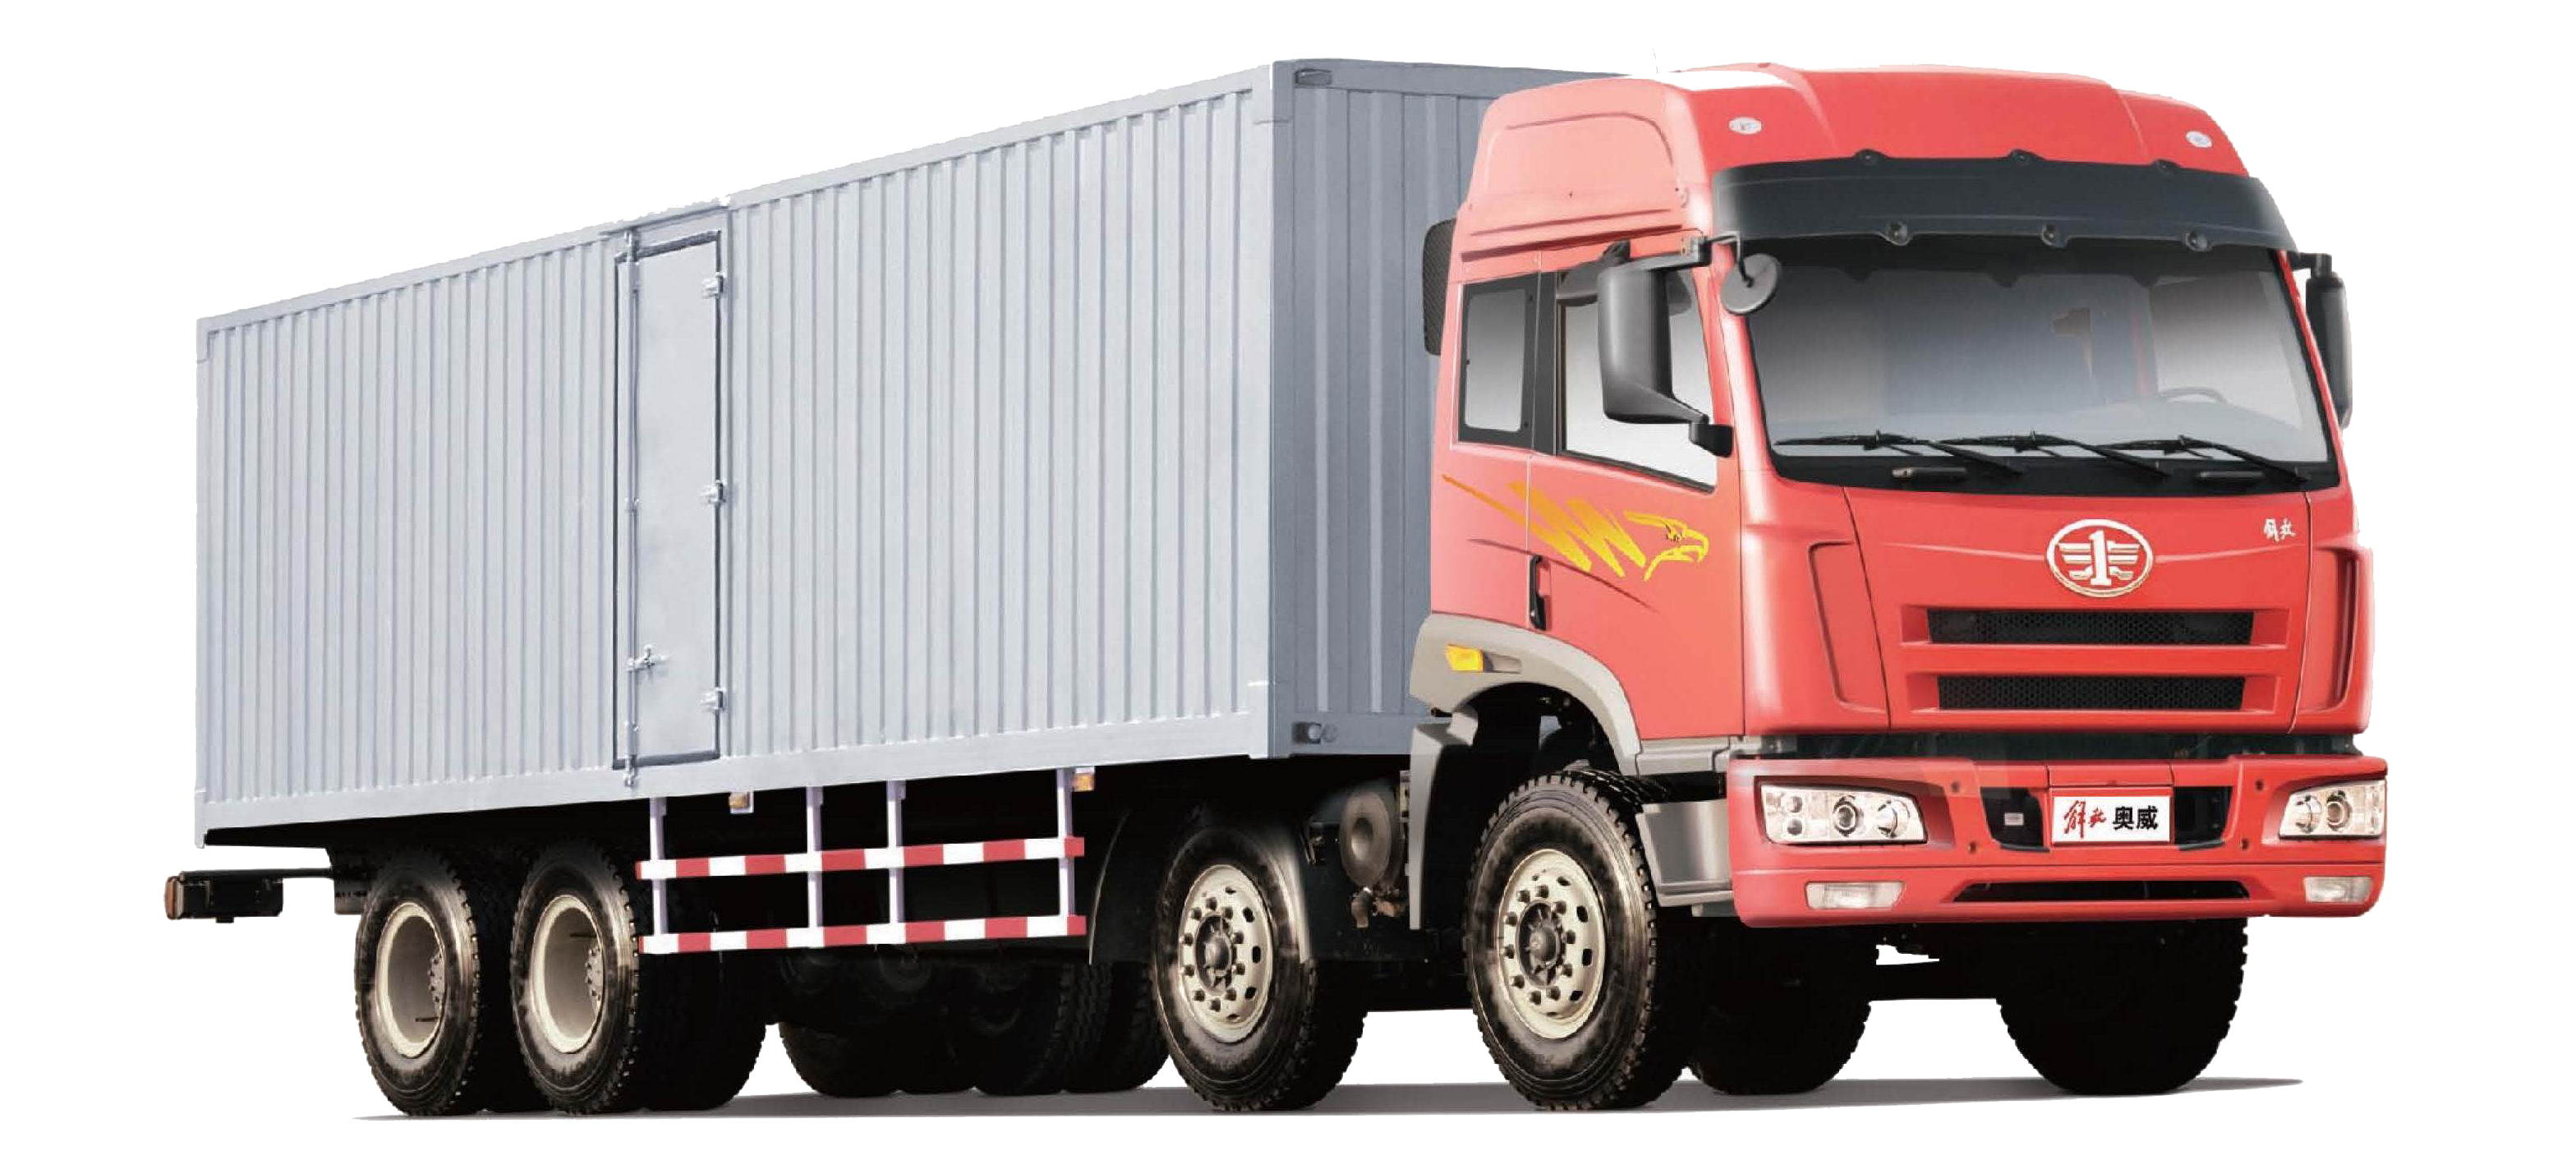 Truck png image. Lorry hd transparent images